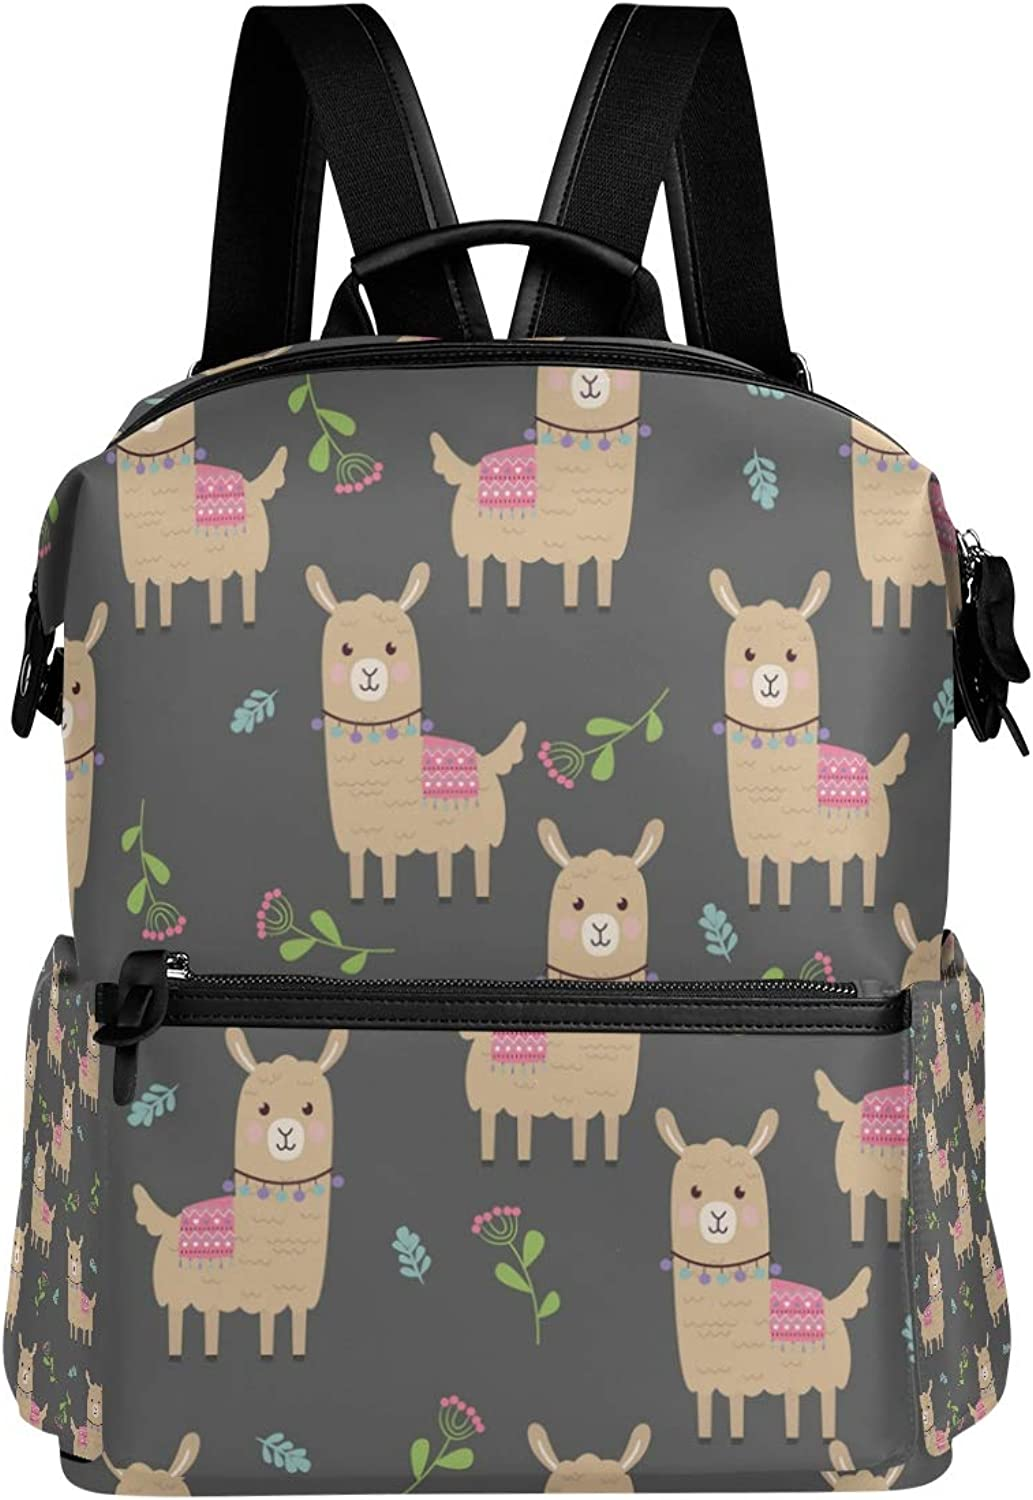 MONTOJ Adorable Yamma and Plants Leather Travel Bag Campus Backpack